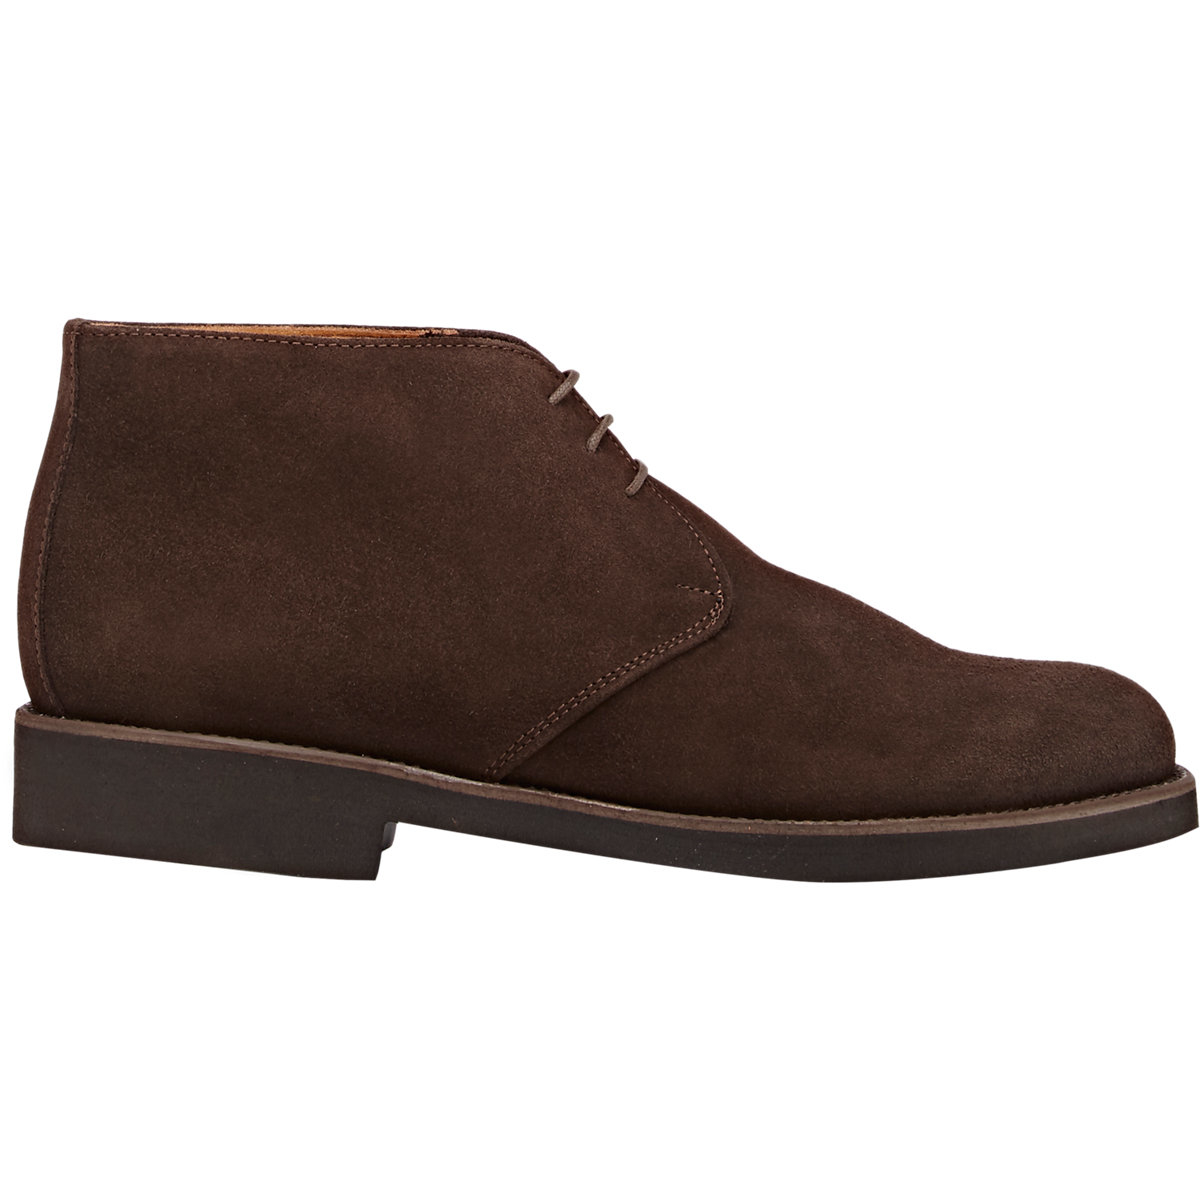 Barneys New York Suede Chukka Boots In Brown For Men Lyst